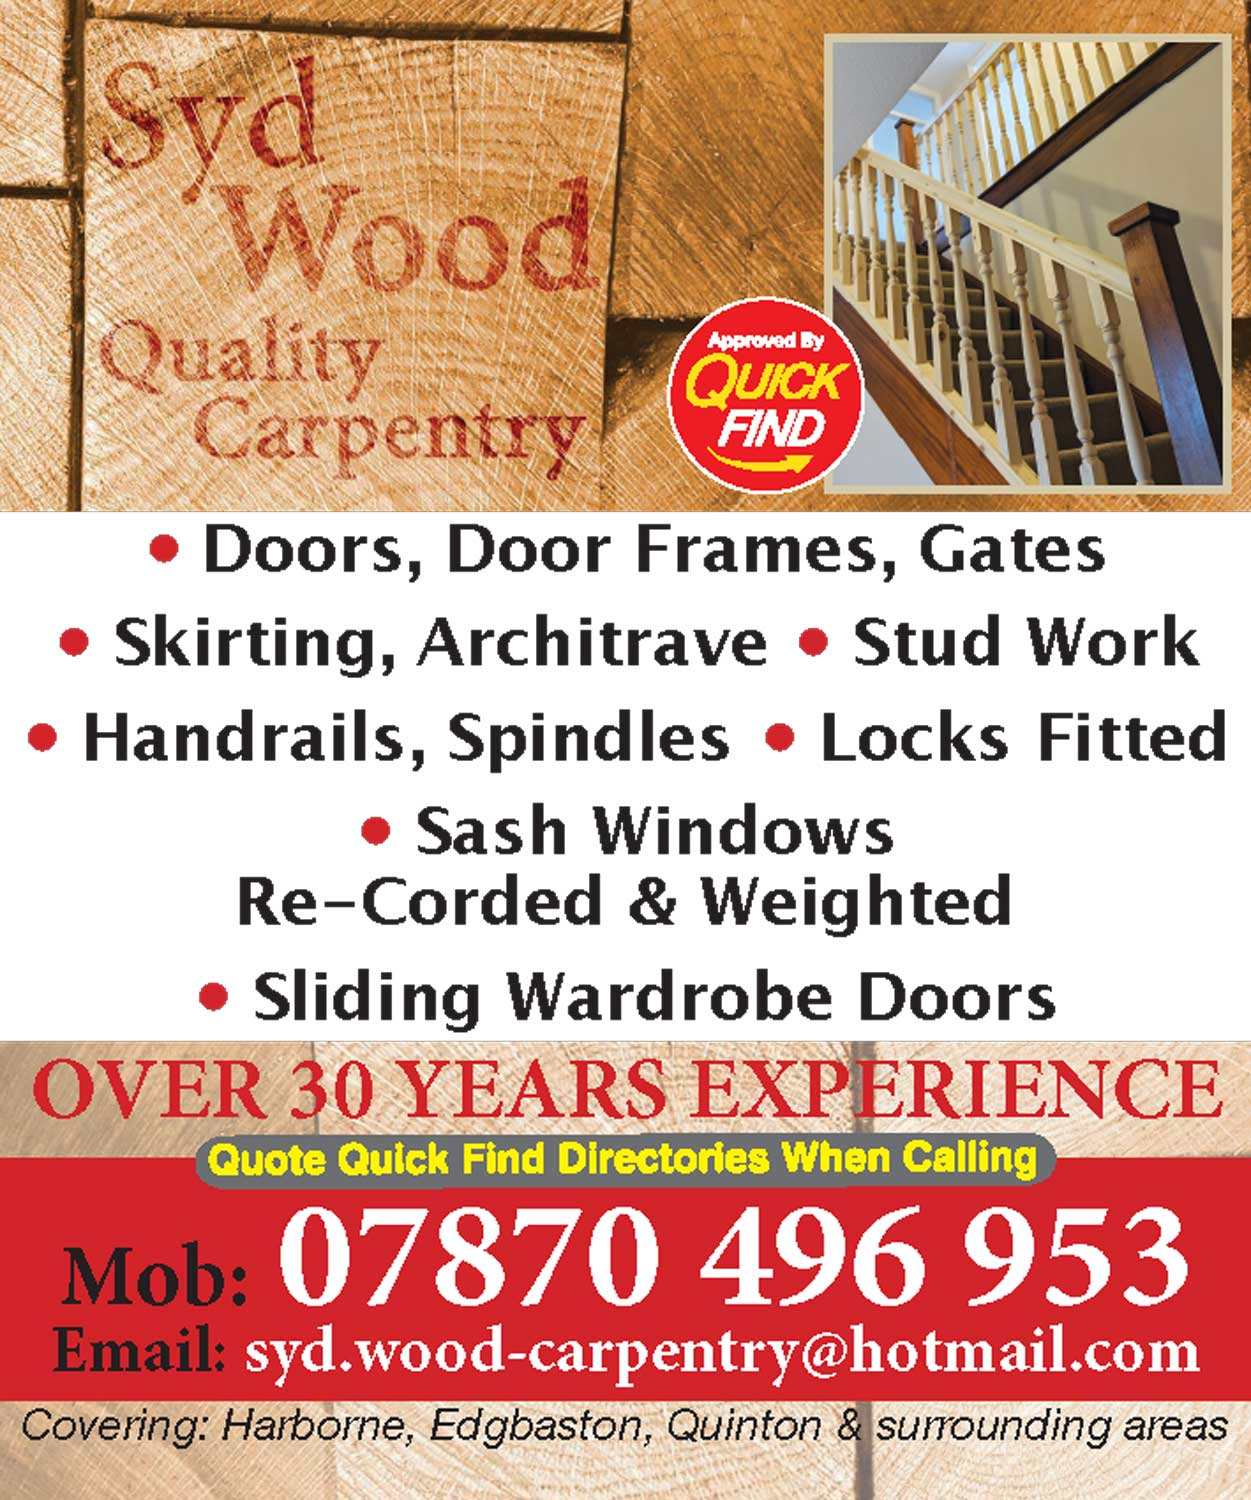 Syd Wood Quality Carpentry